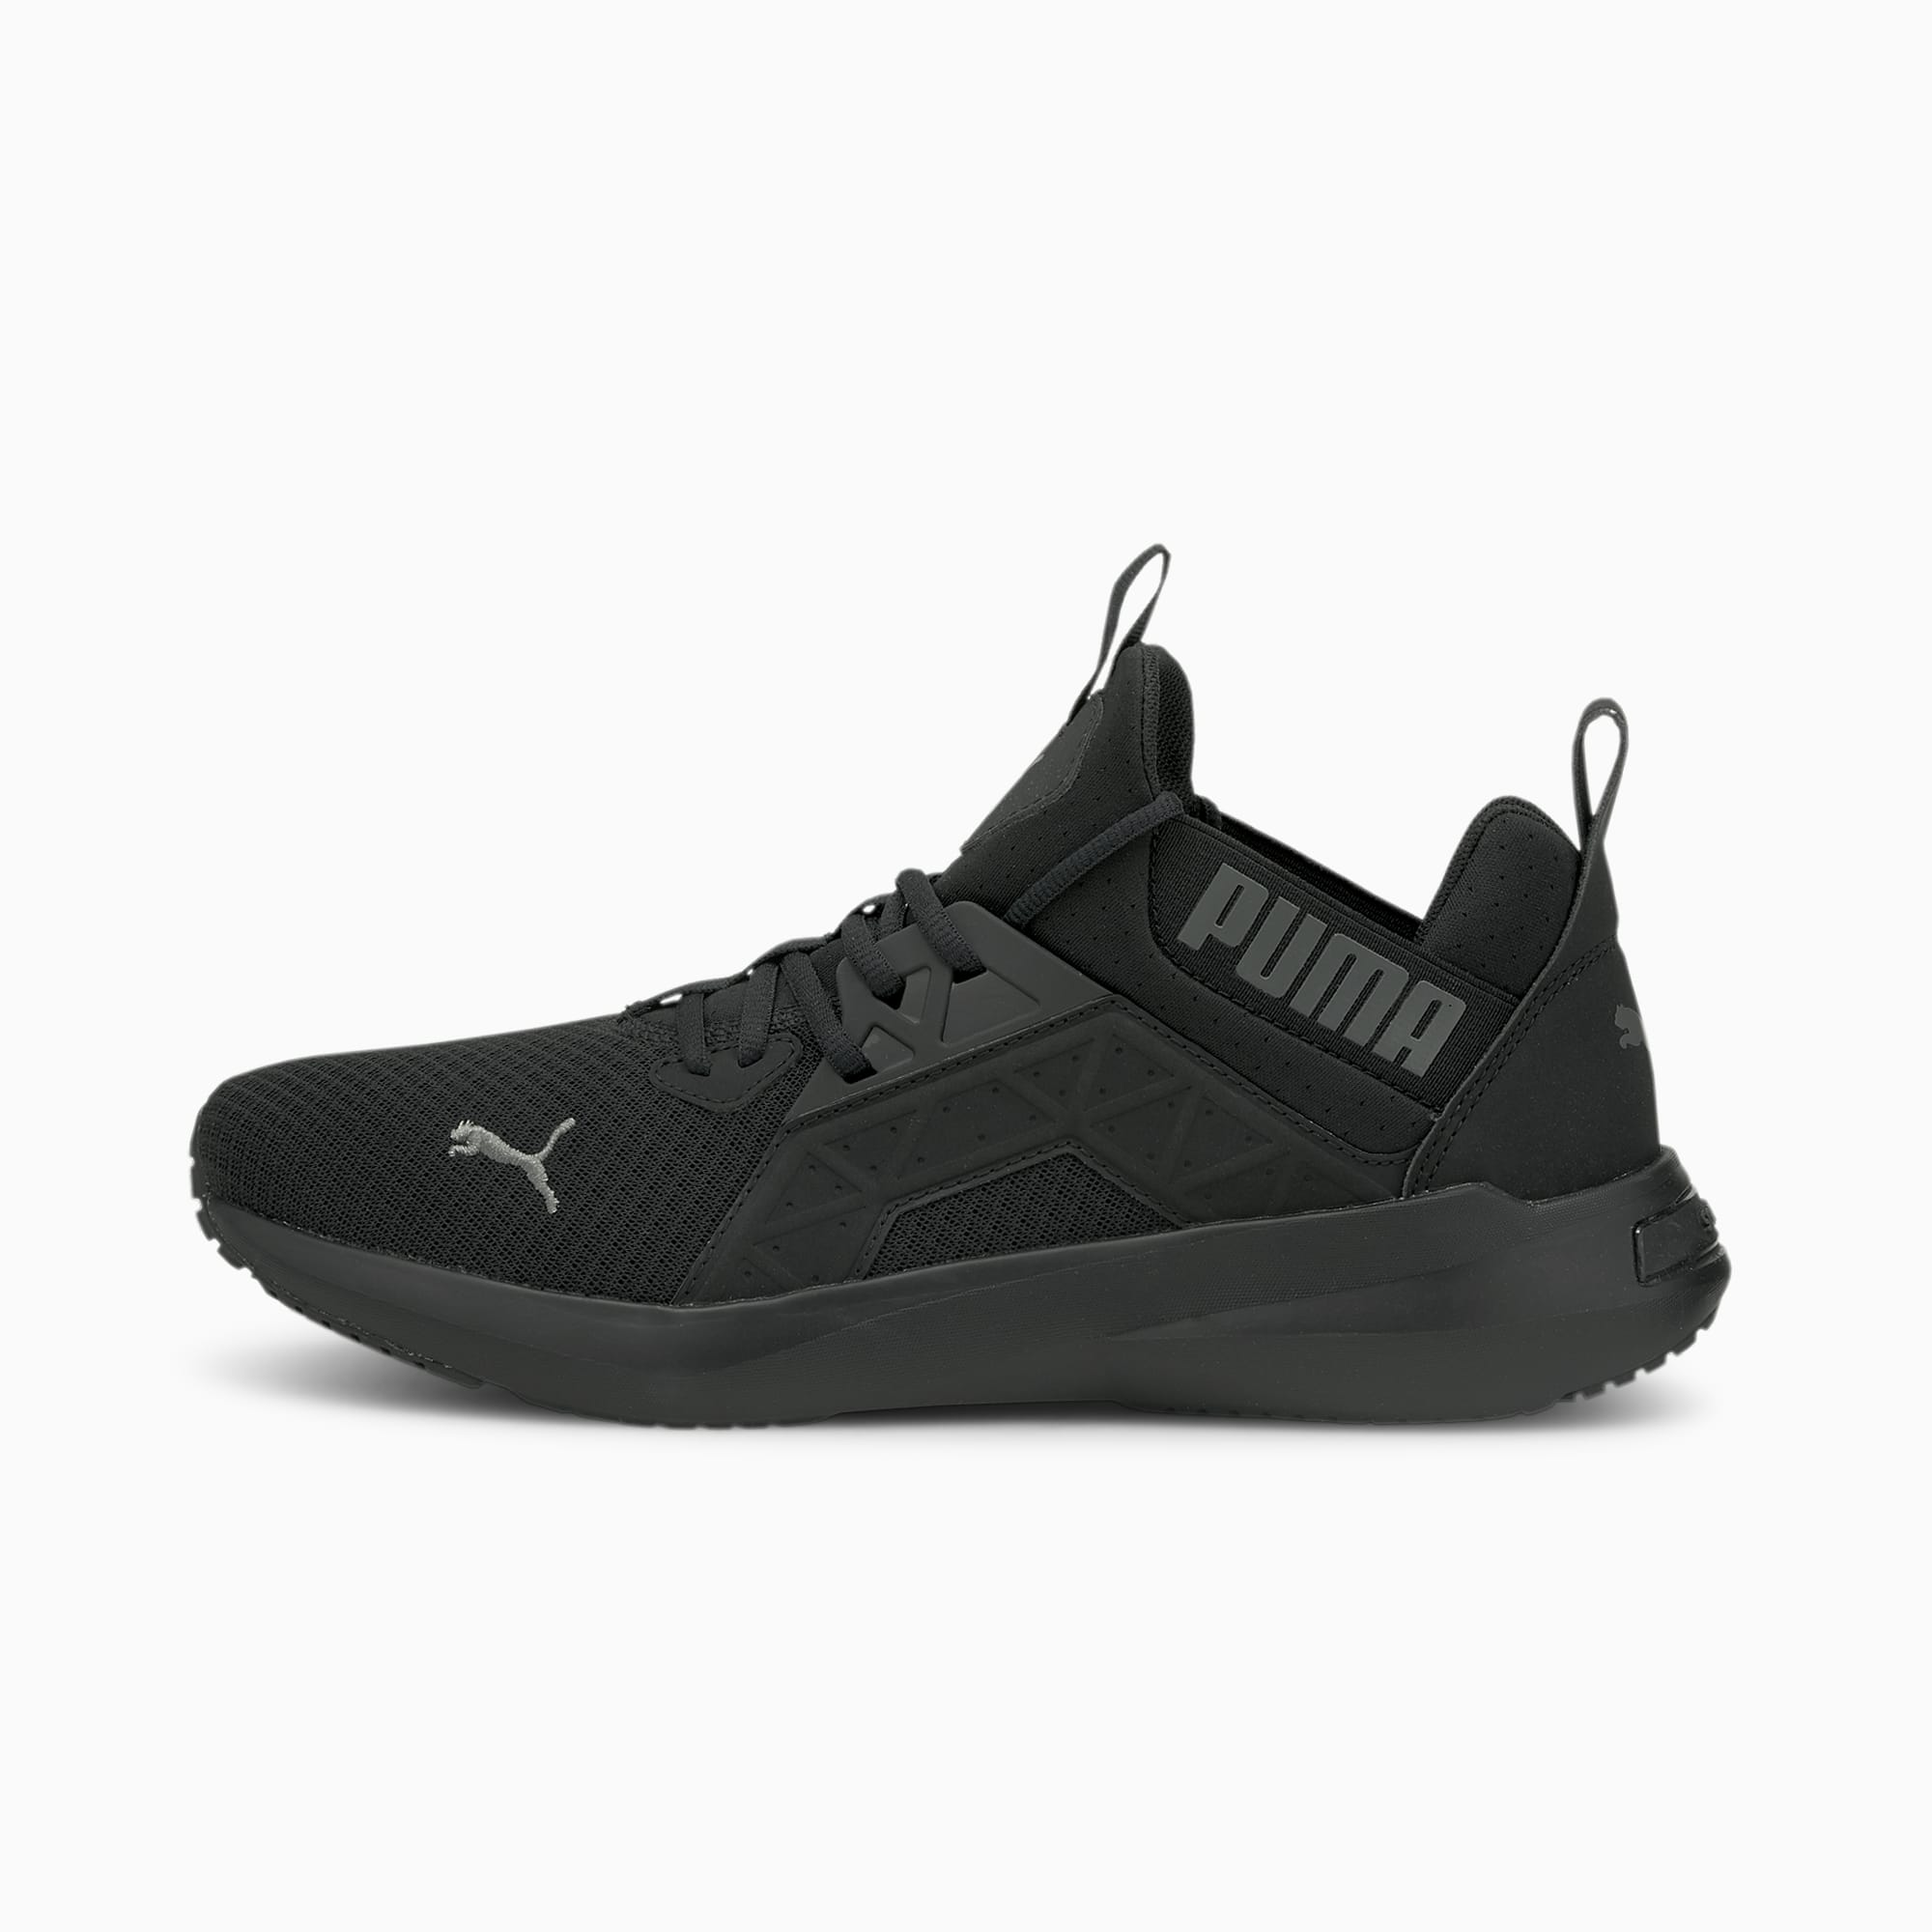 Softride Enzo NXT Men's Running Shoes